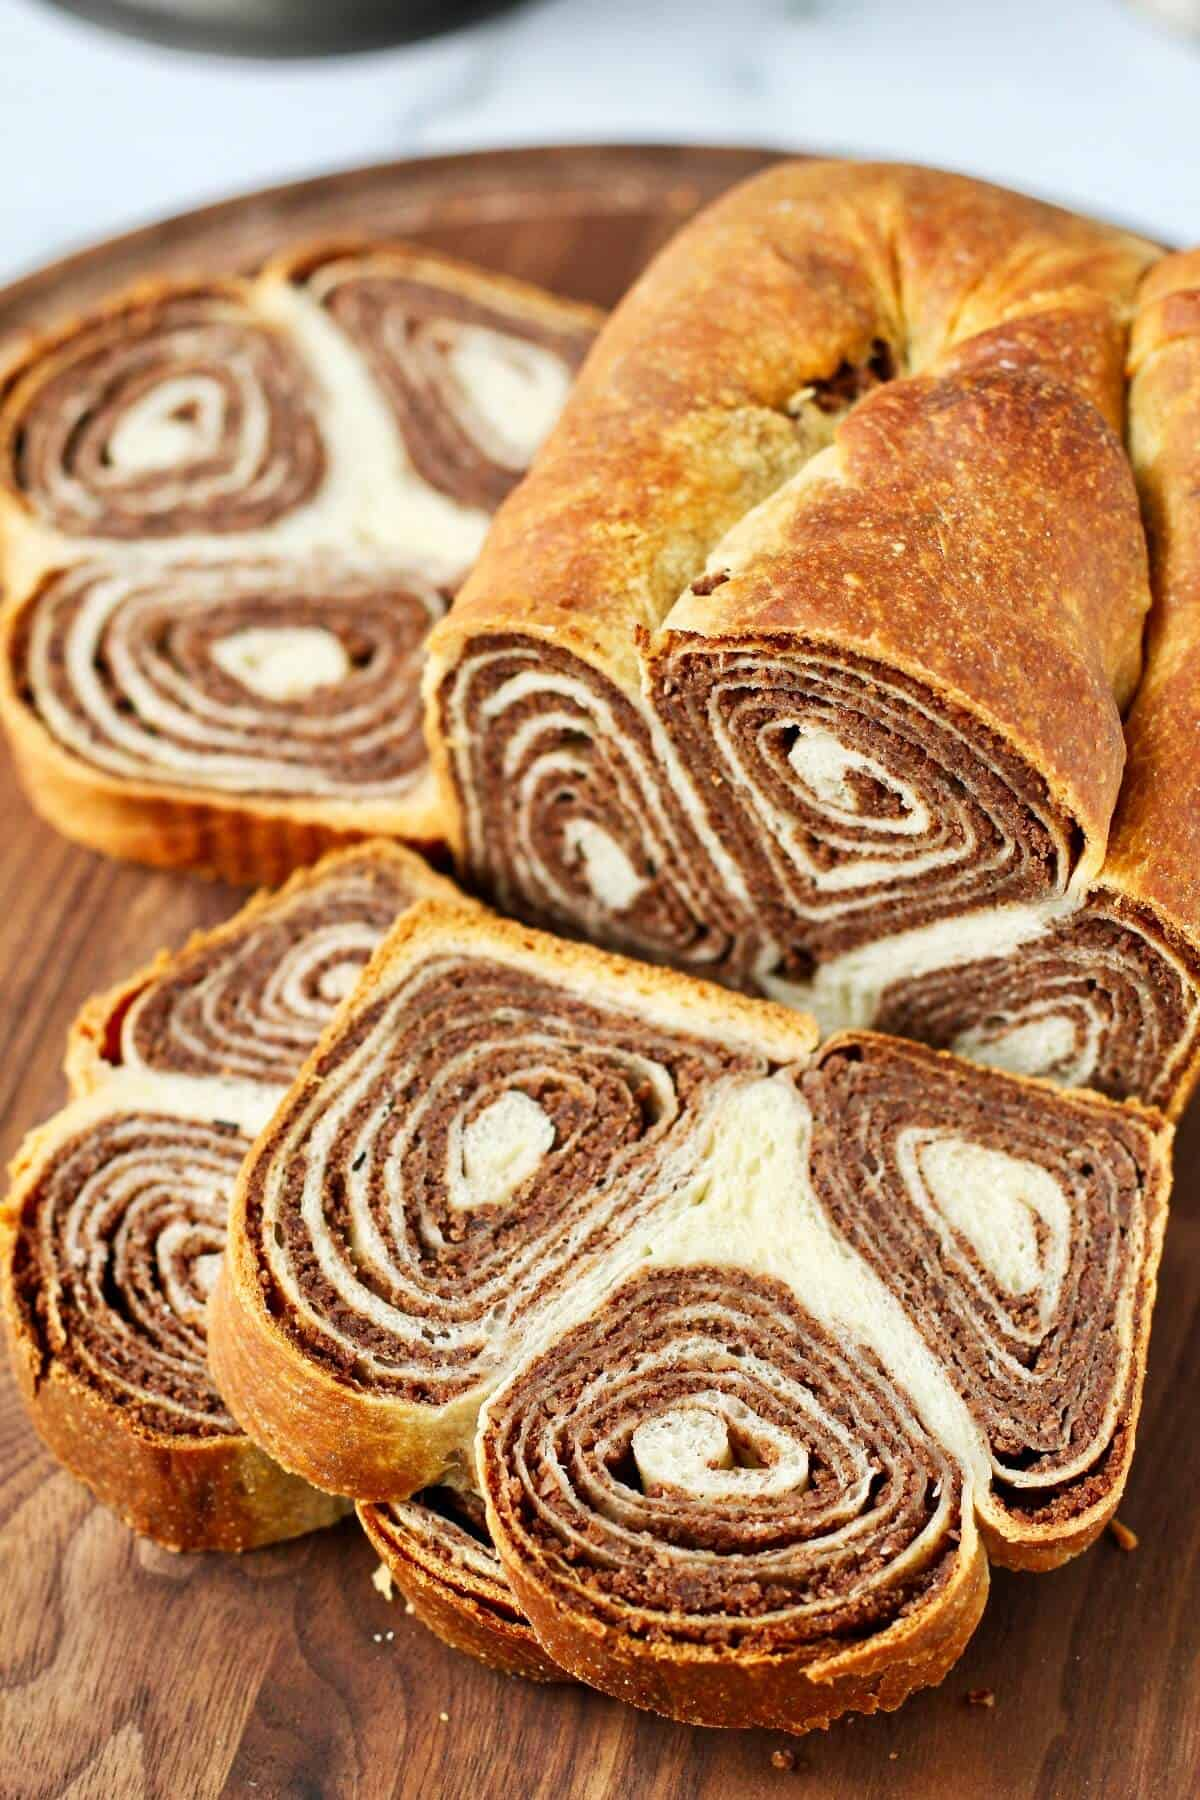 Potica slices with swirled nut filling